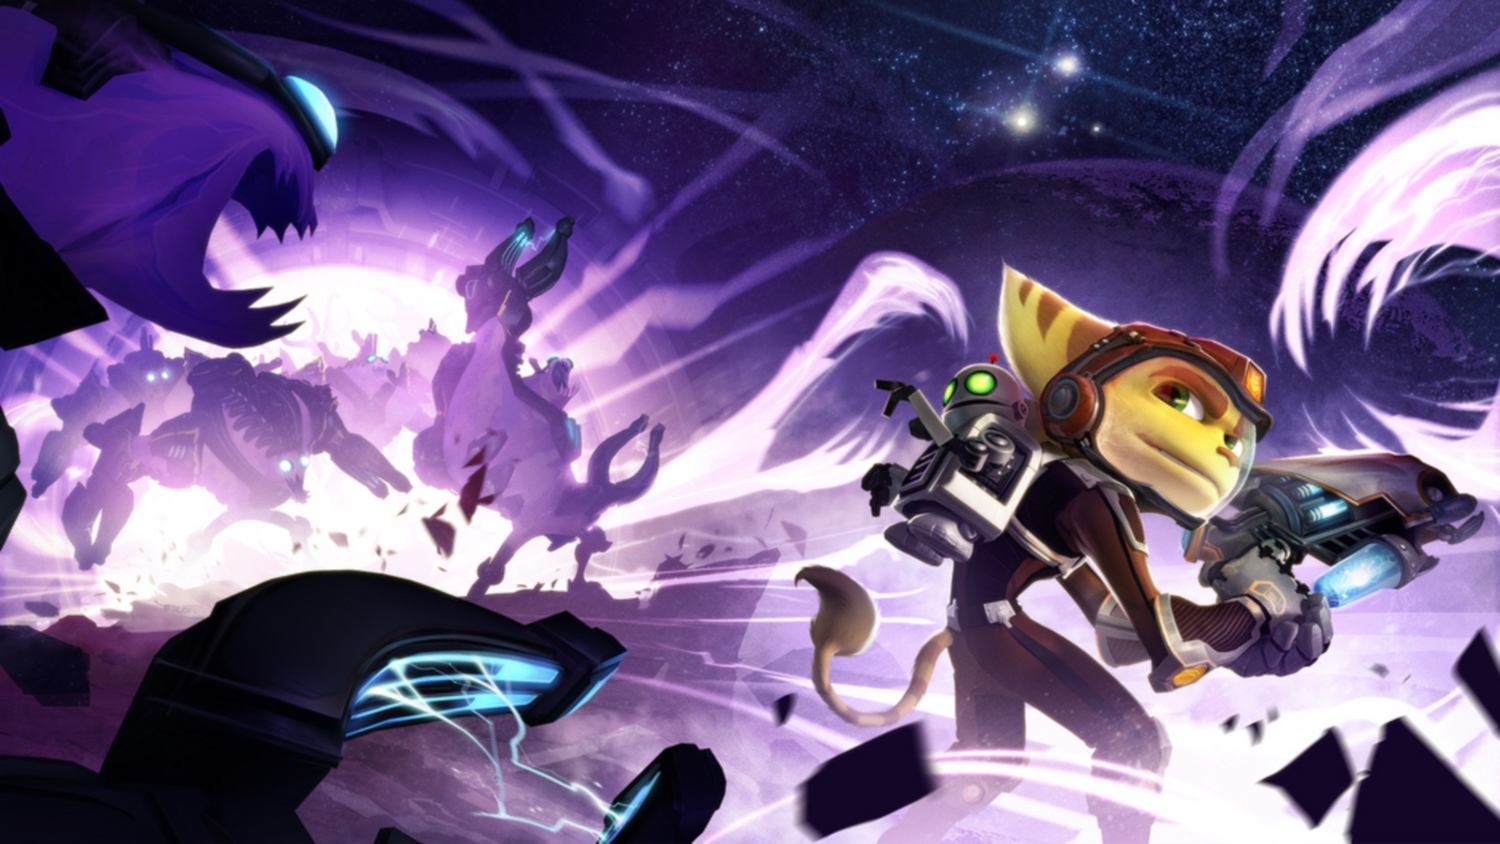 Ratchet & Clank: Into the Nexus review: closure